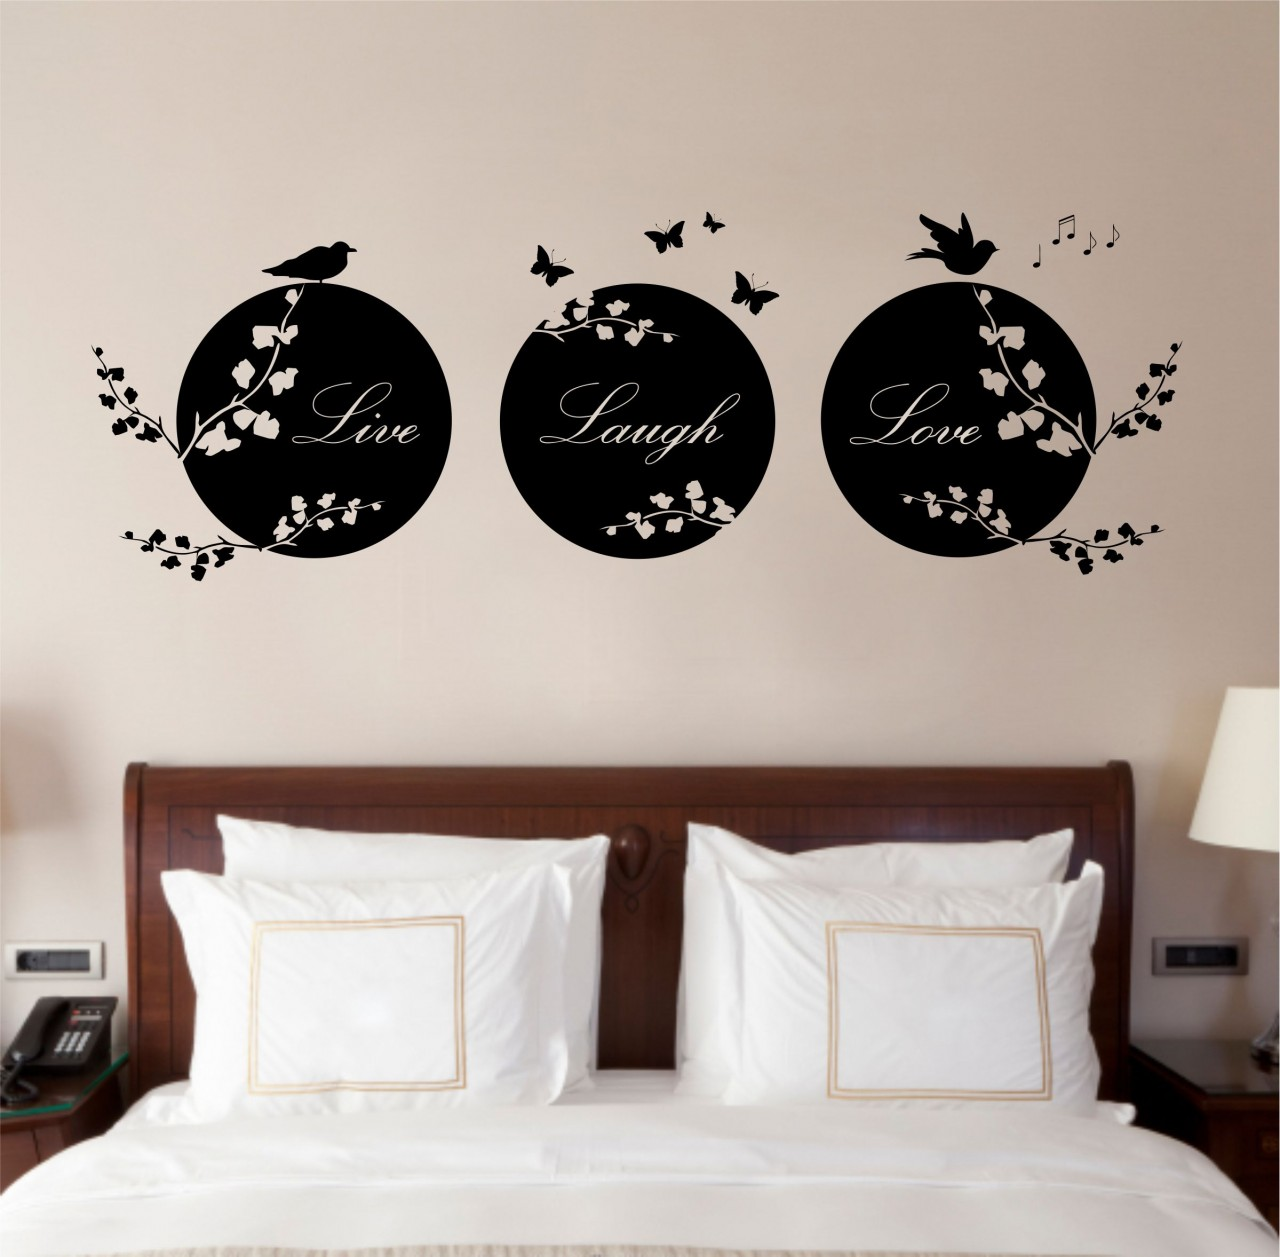 Vinyl Wall Art Vinyl Wall Art Craft Room Vinyl Wall: wall stickers for bedrooms